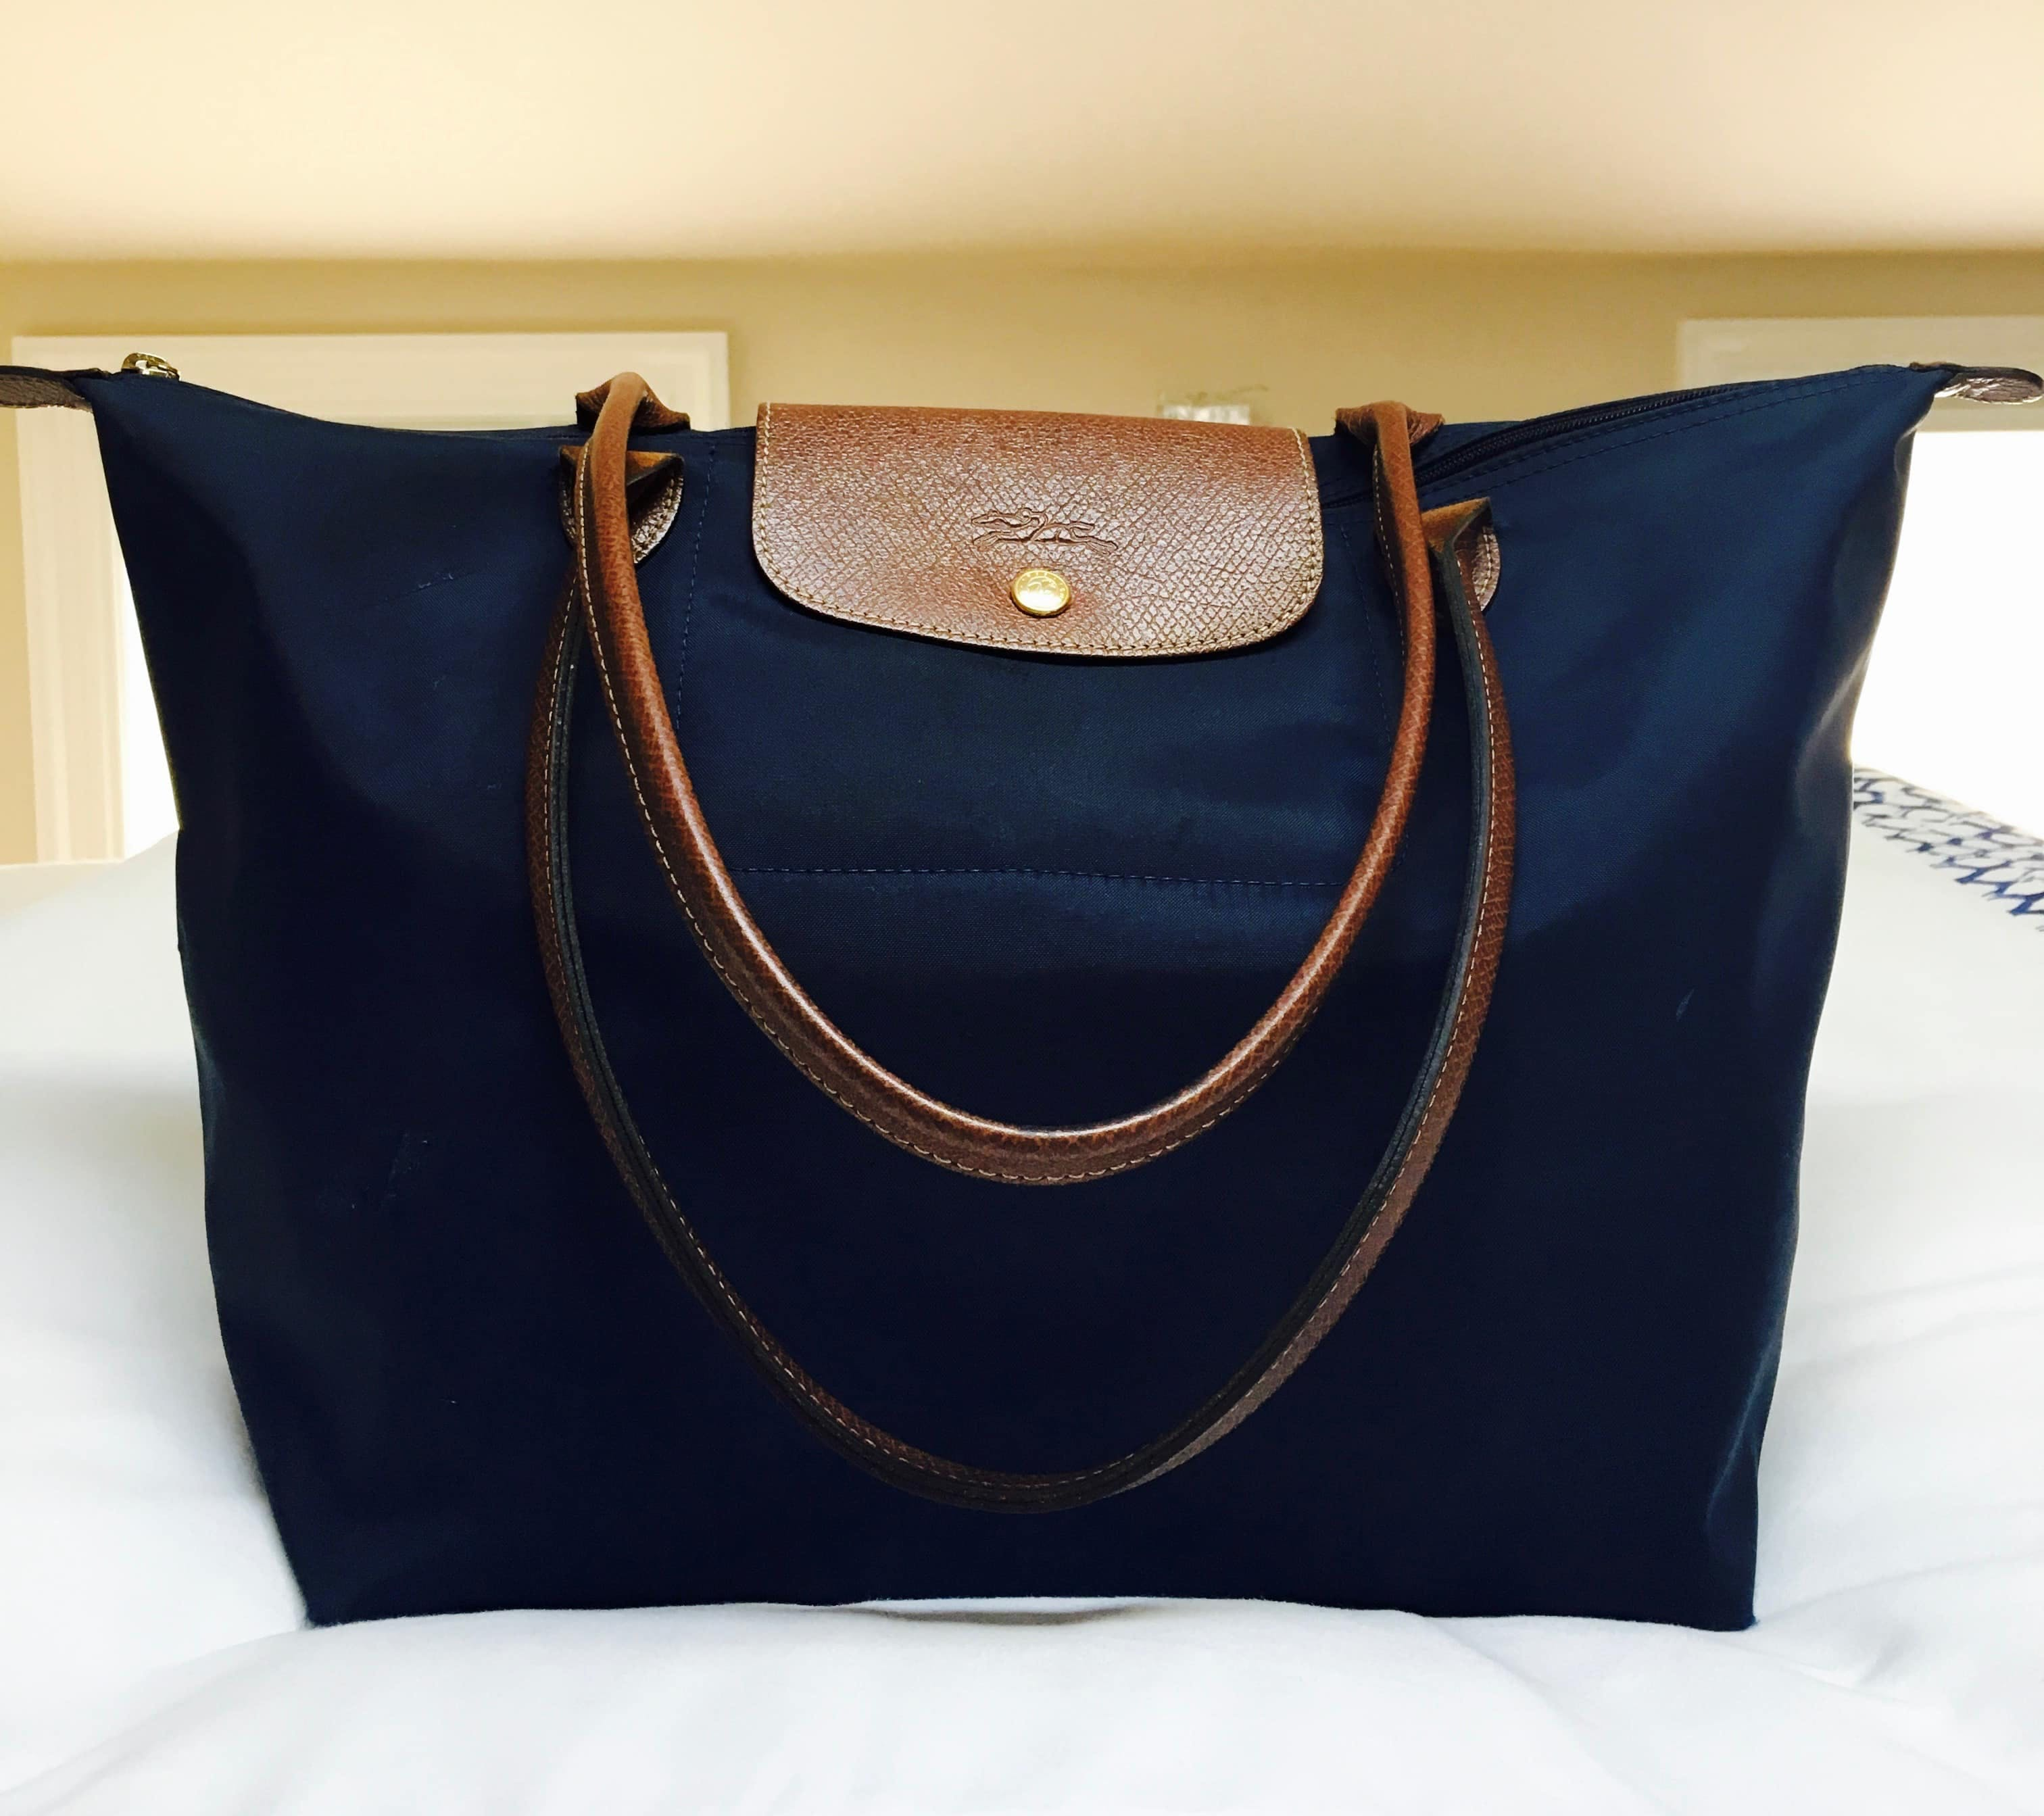 Longchamp Le Pliage Travel Tote | Sam Schaible